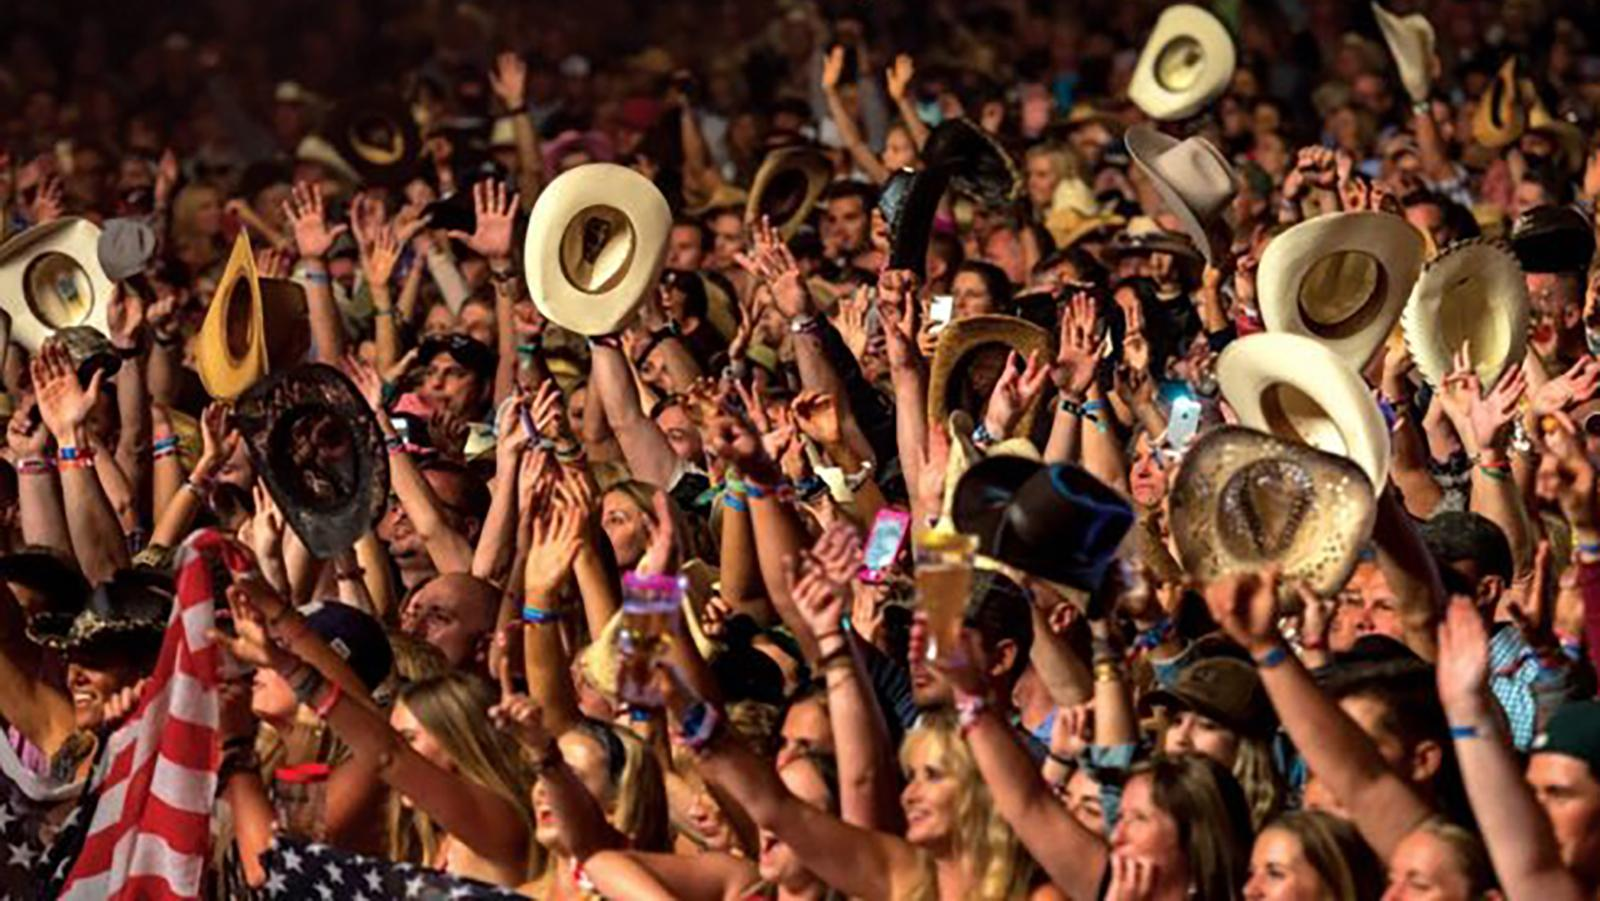 Country Fest - 3 Day Pass (6/18 - 6/20)